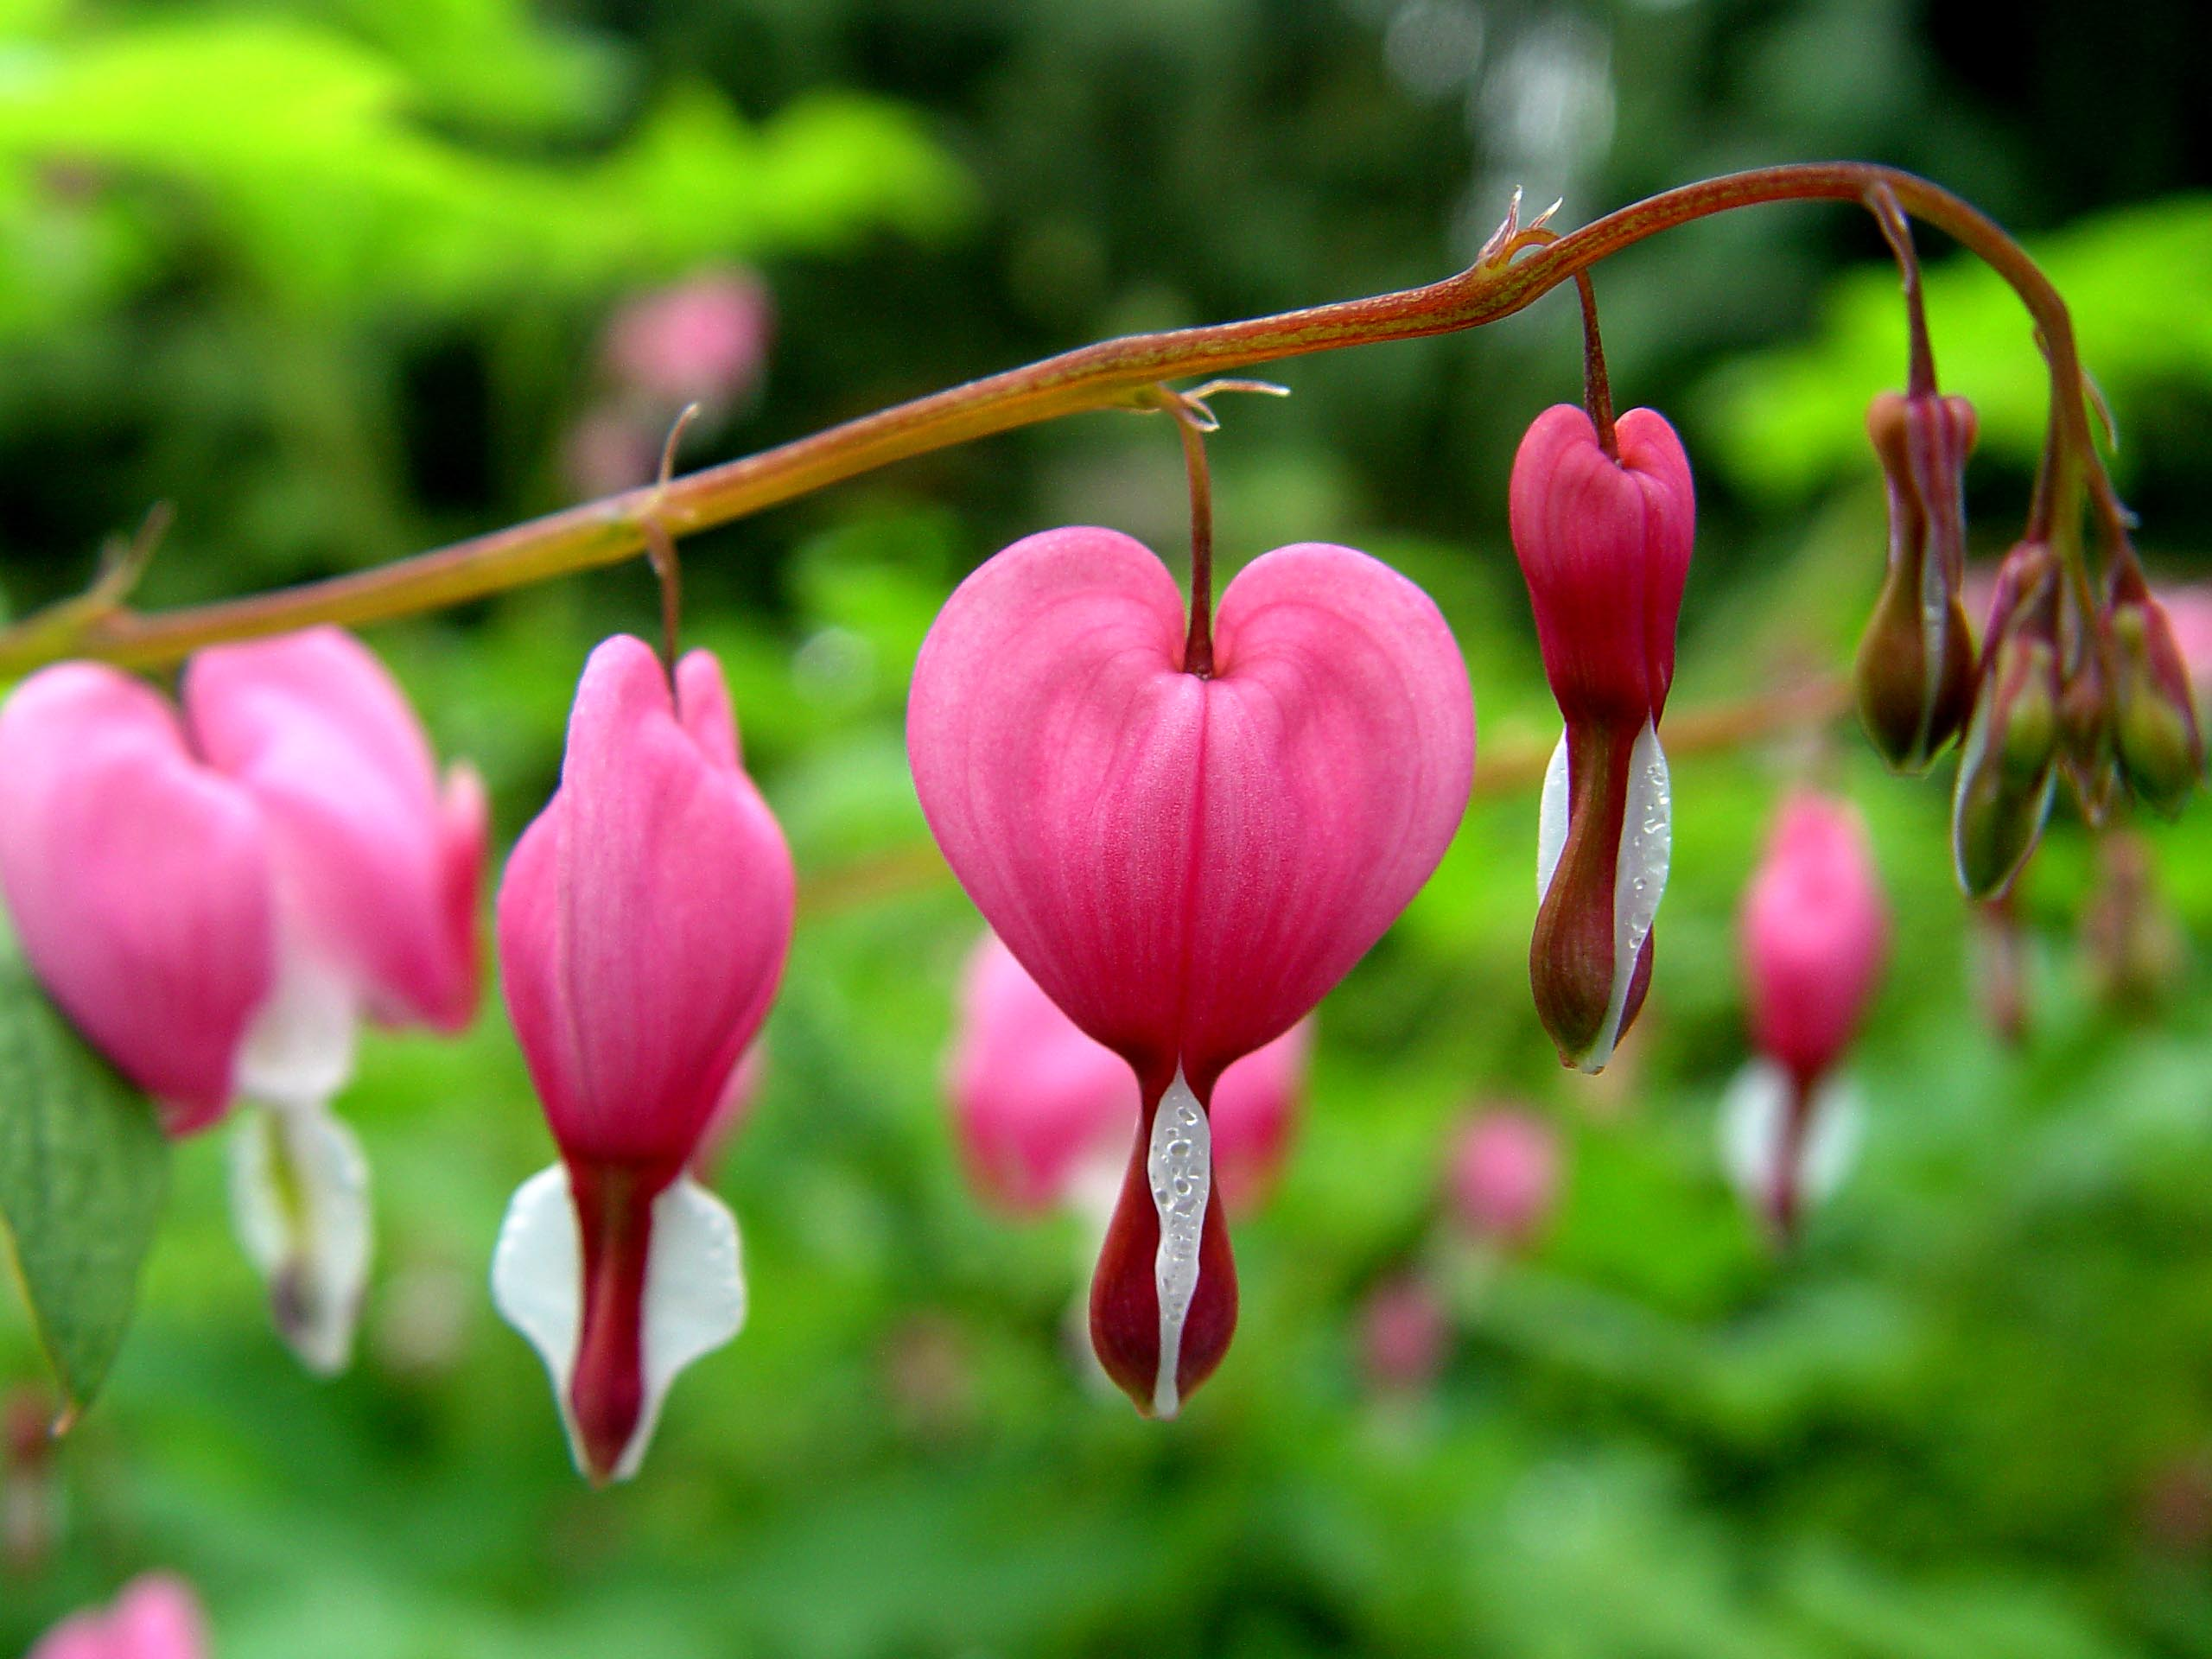 Garden Flower Bleeding Heart